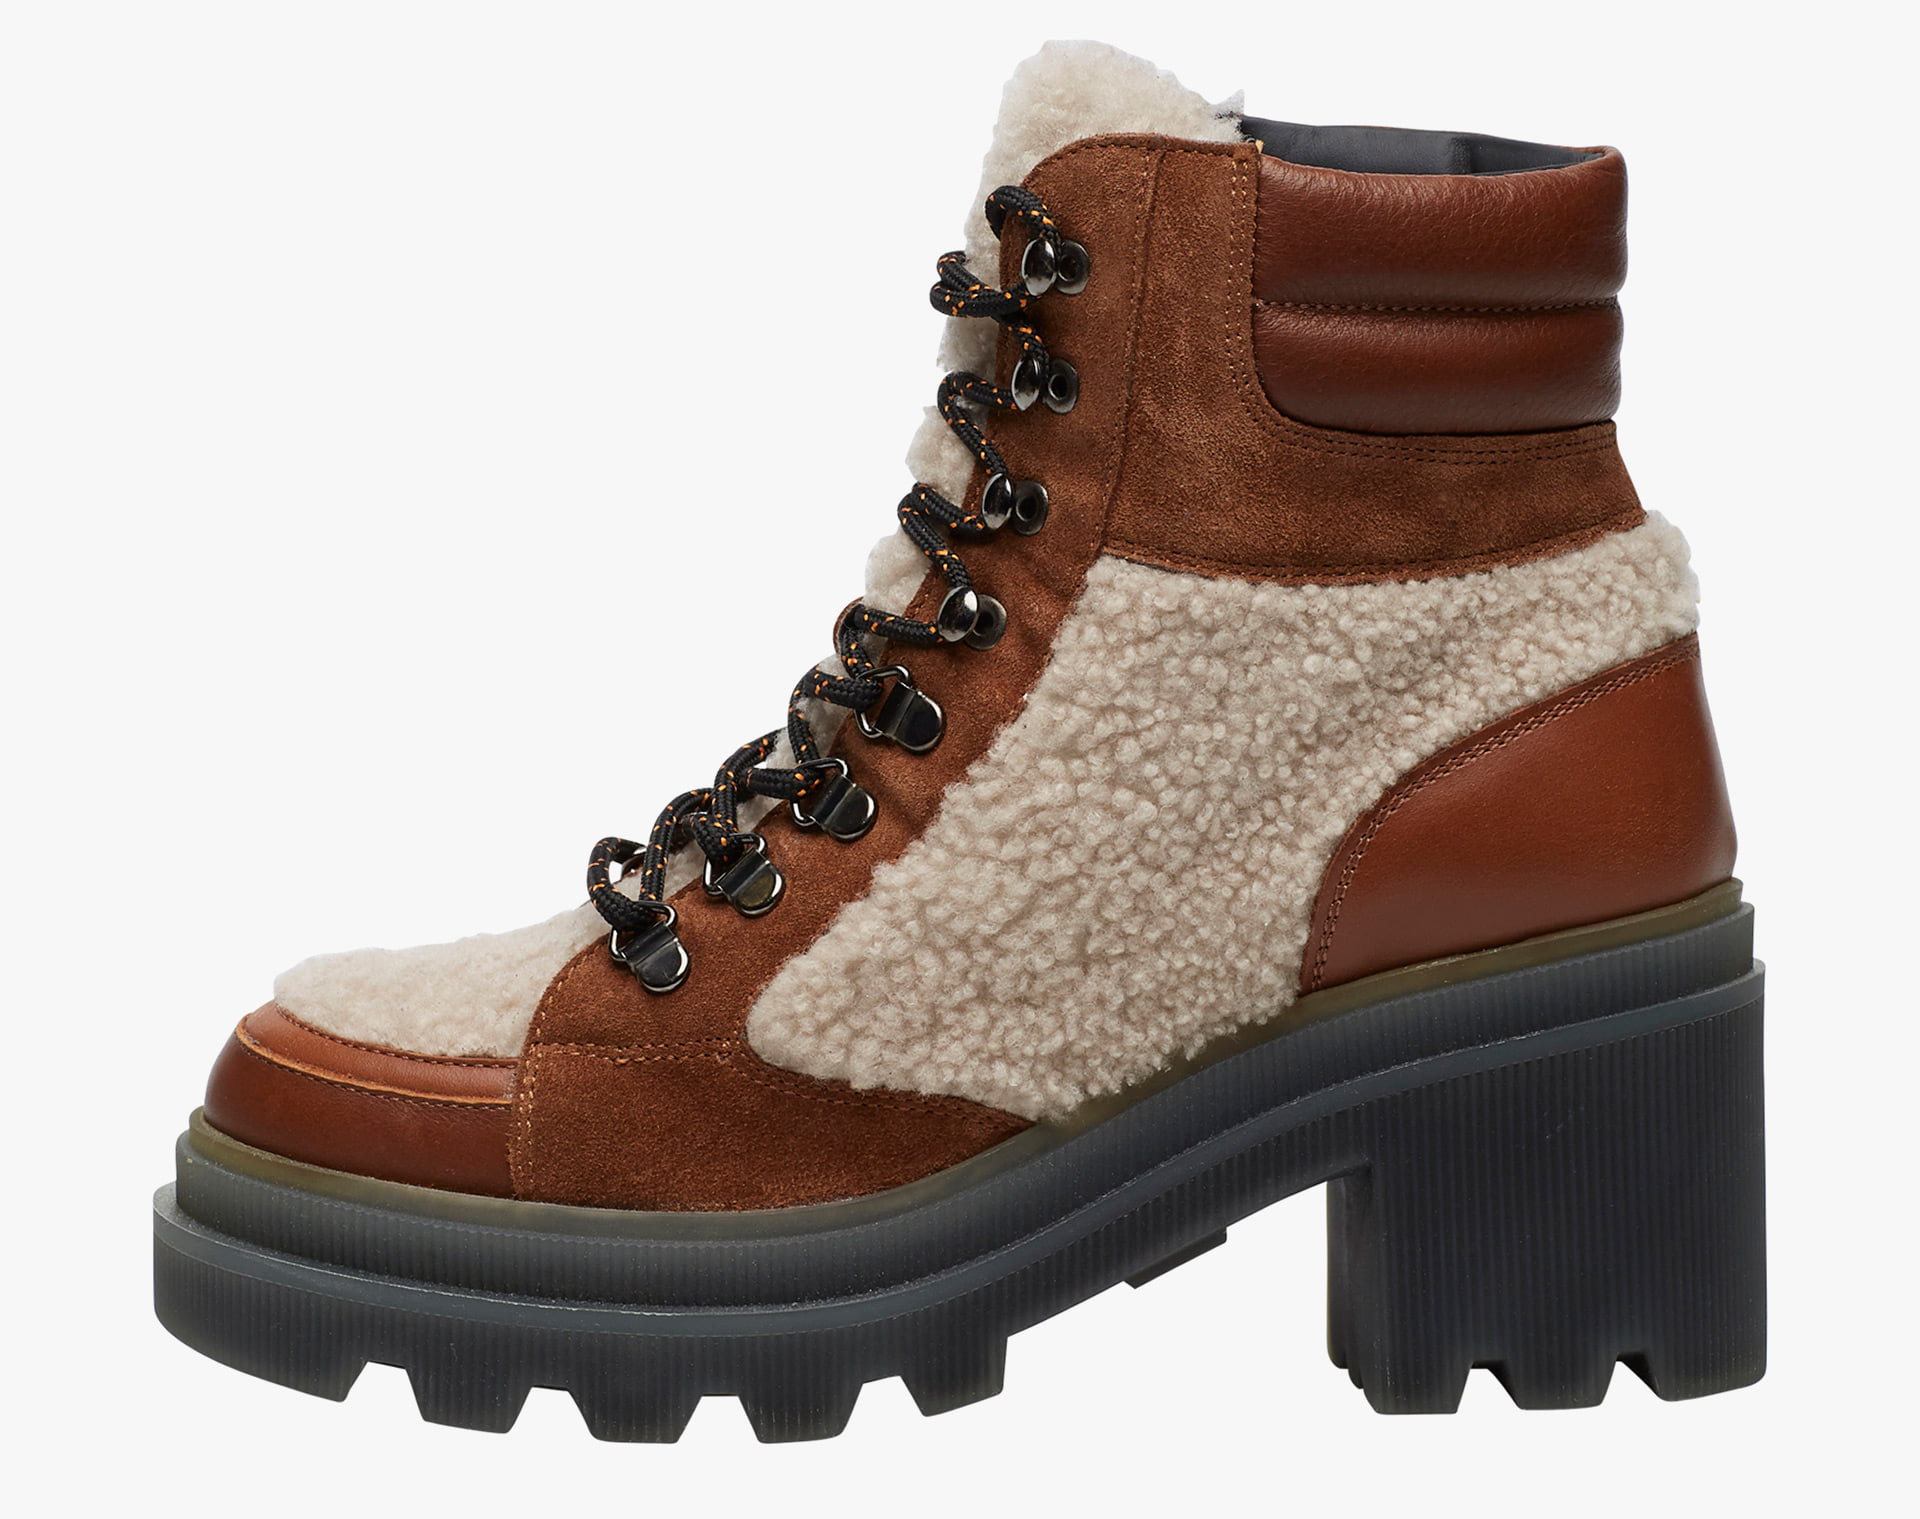 LODEN 003 - Trekking-style ankle boot with heel - Leather/beige